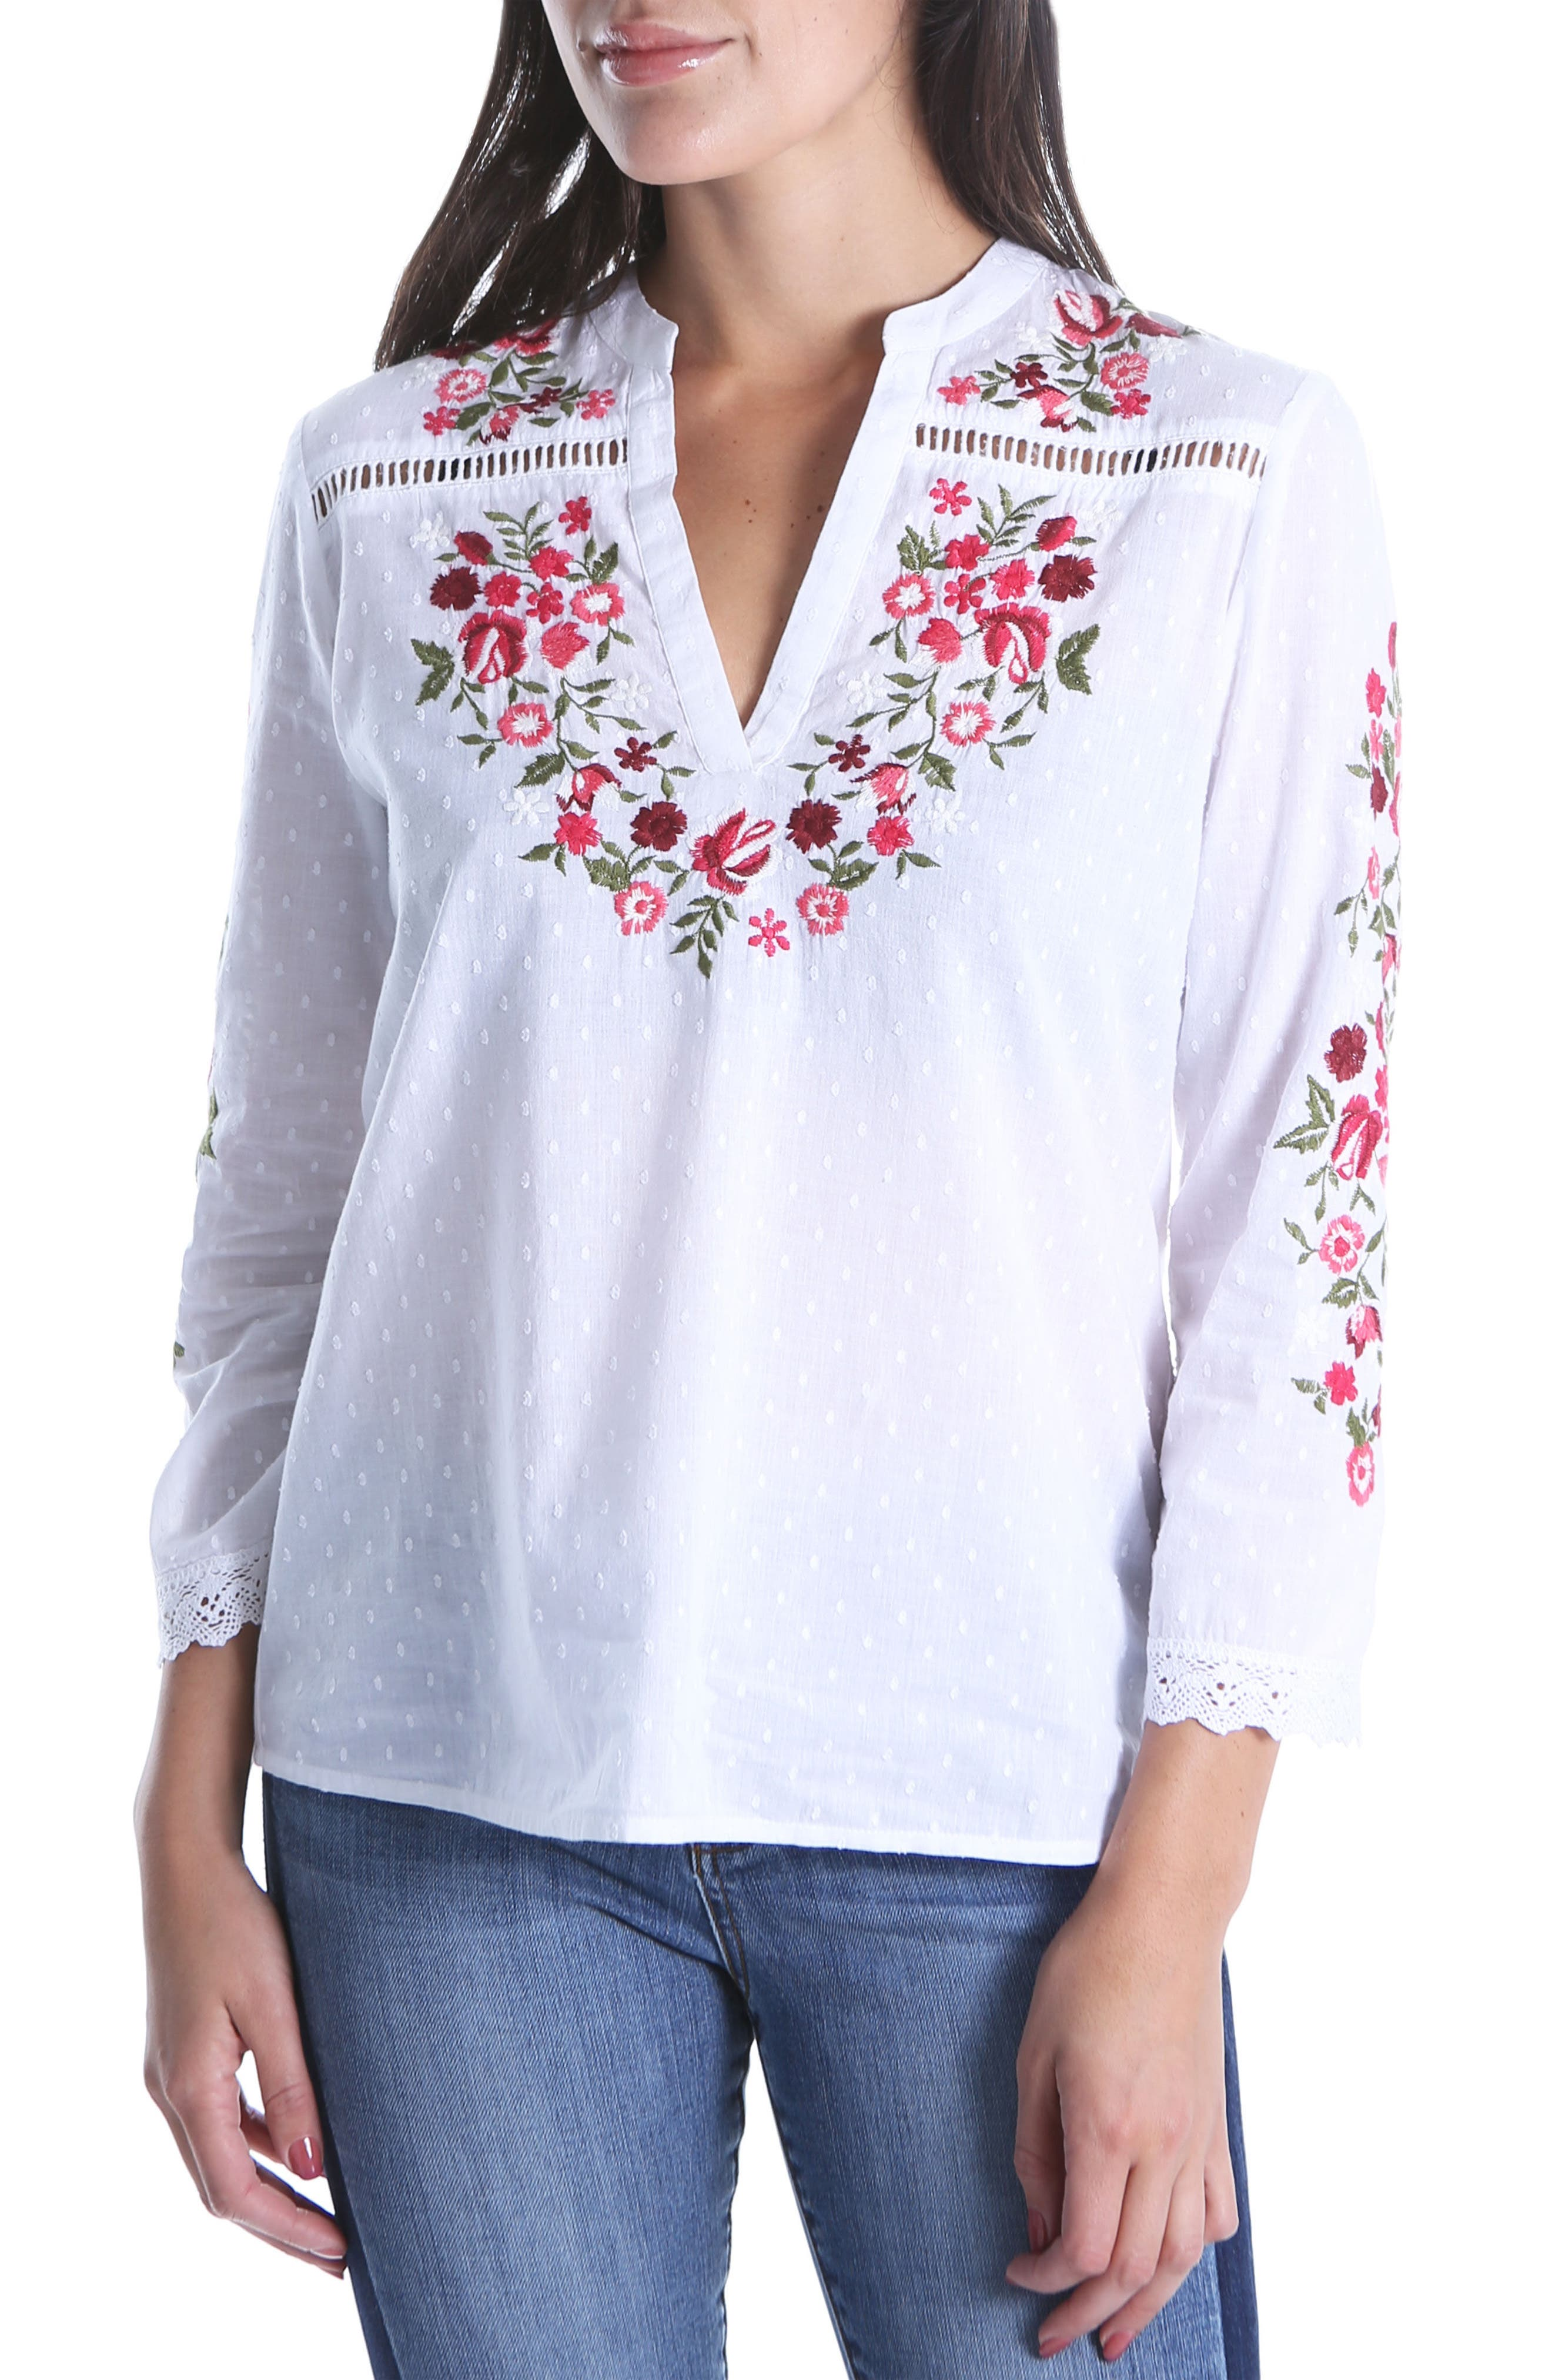 Kat Embroidered Lace Detail Blouse,                             Main thumbnail 1, color,                             White